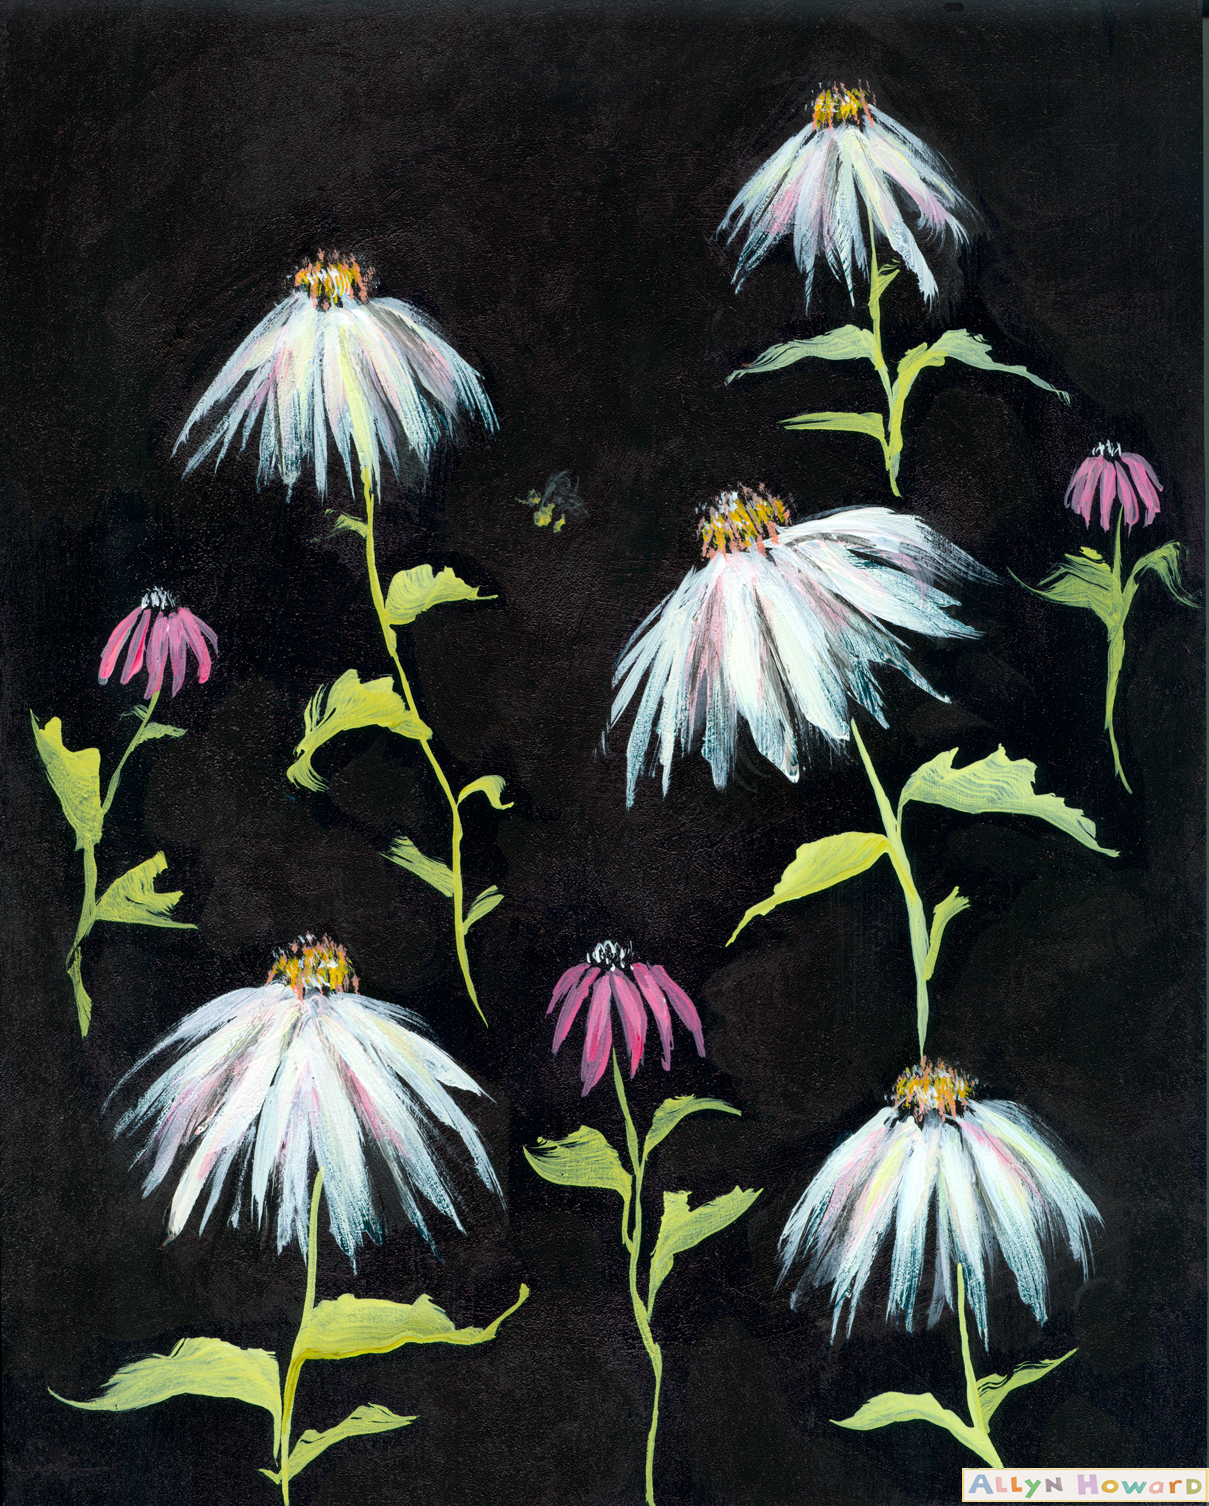 Allyn_Howard_white-wildflowers_daisies.jpg